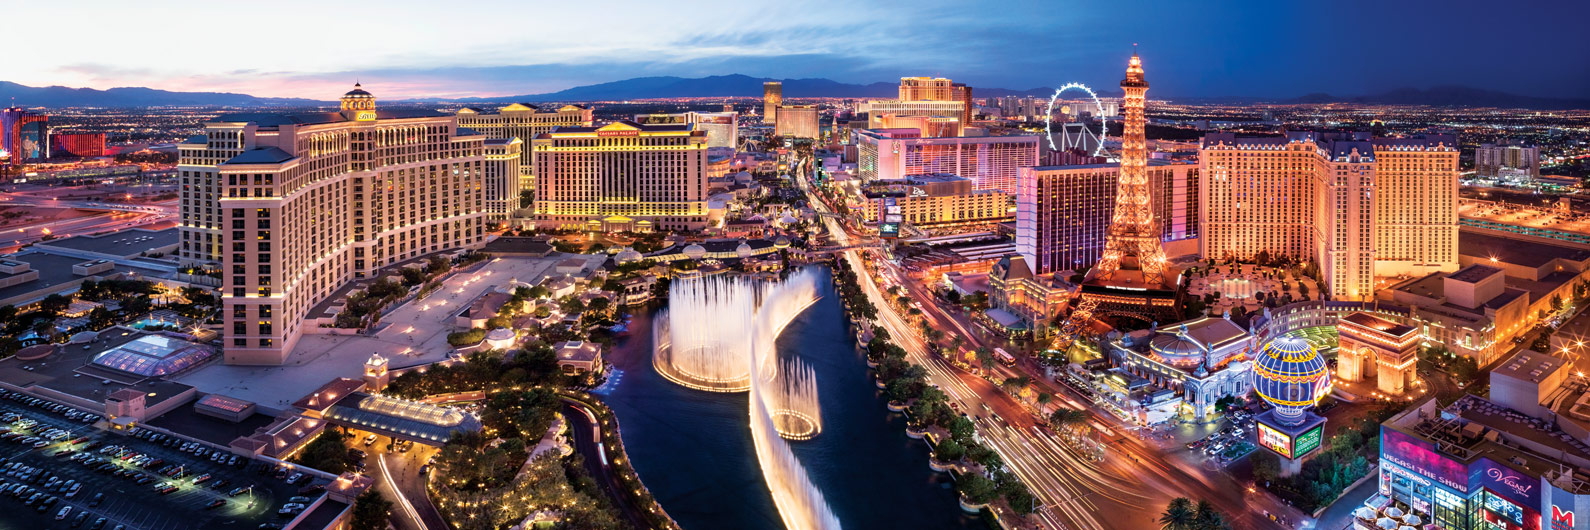 Book your Miami (MIA) to Las Vegas (LAS) flight with our Best Price Guarantee. Save % when booking your hotel + flight. FREE 24 hour cancellation on most flights. Skip to main content. Cheap Flights from Miami to Las Vegas from $